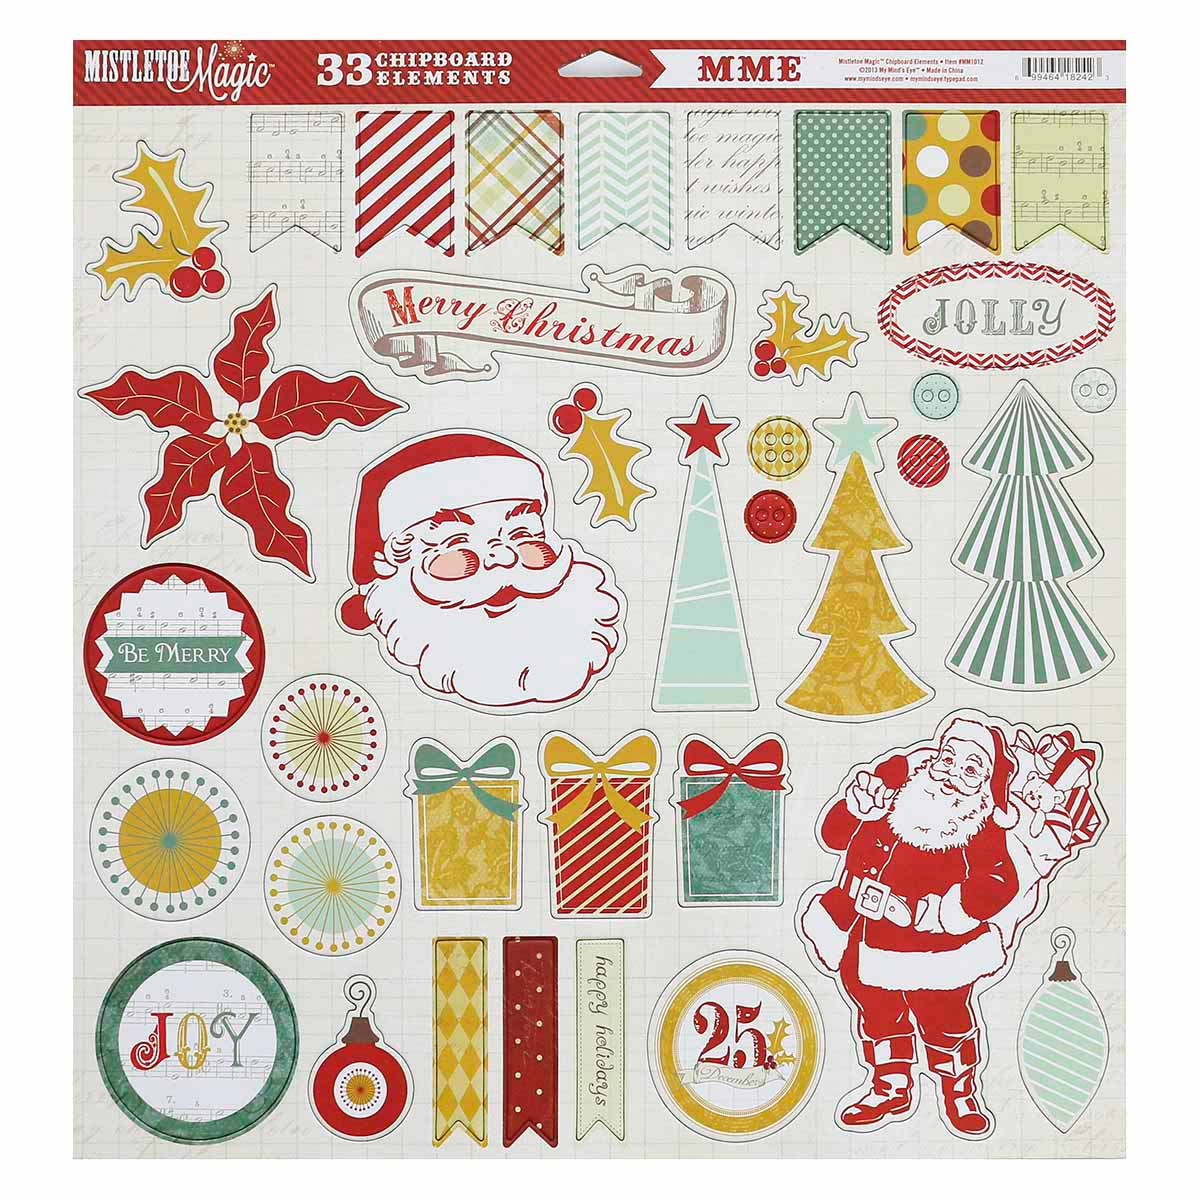 MM1012 Стикеры из чипборд My Mind's Eye Mistletoe Magicа 30*30см